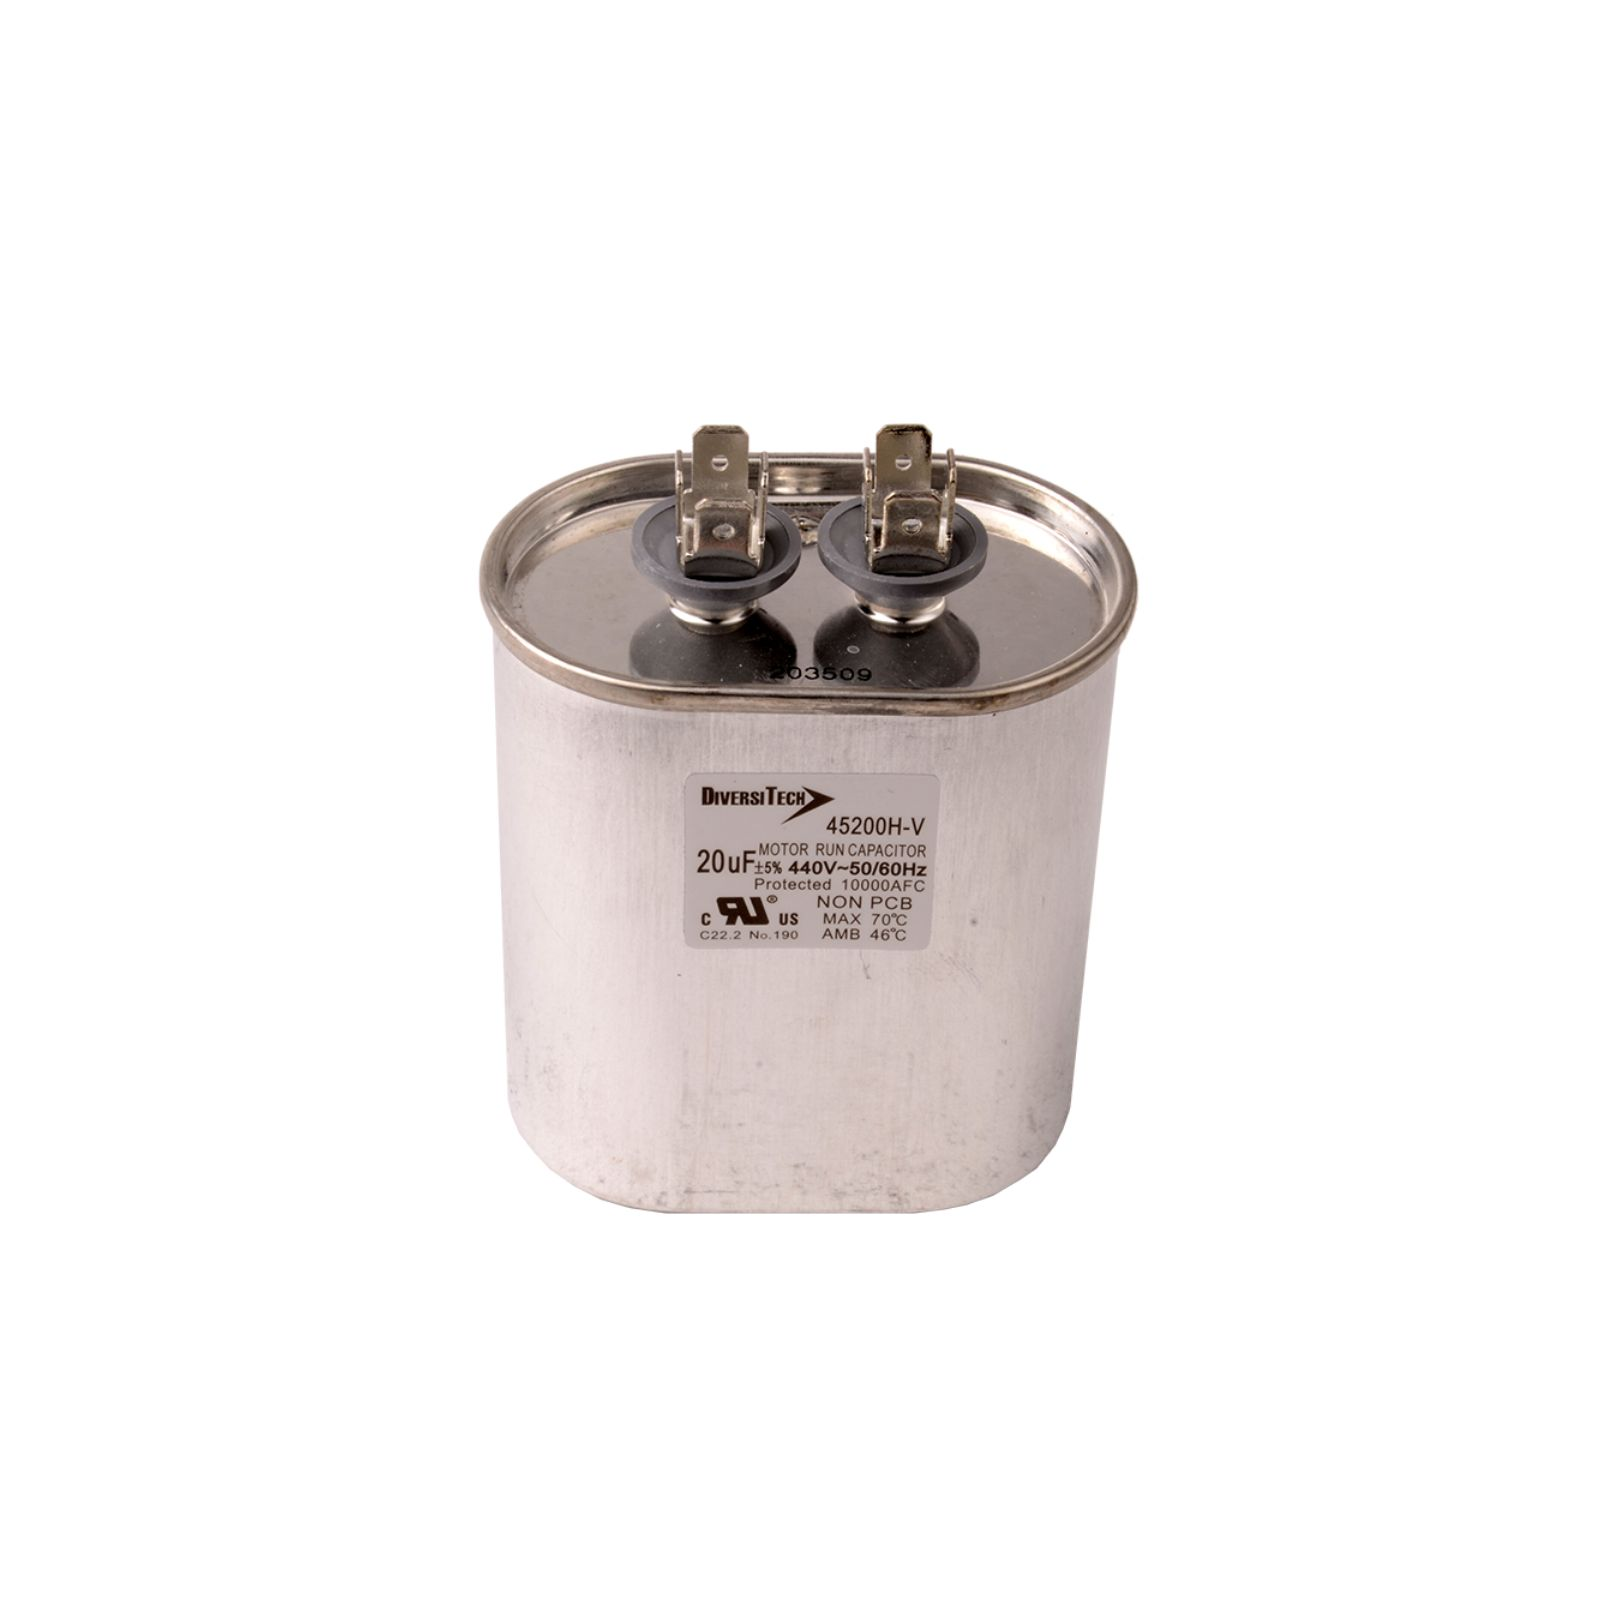 DiversiTech 45200H - Motor Run Capacitor, Oval, 20/440,  Can Height- 2.56""